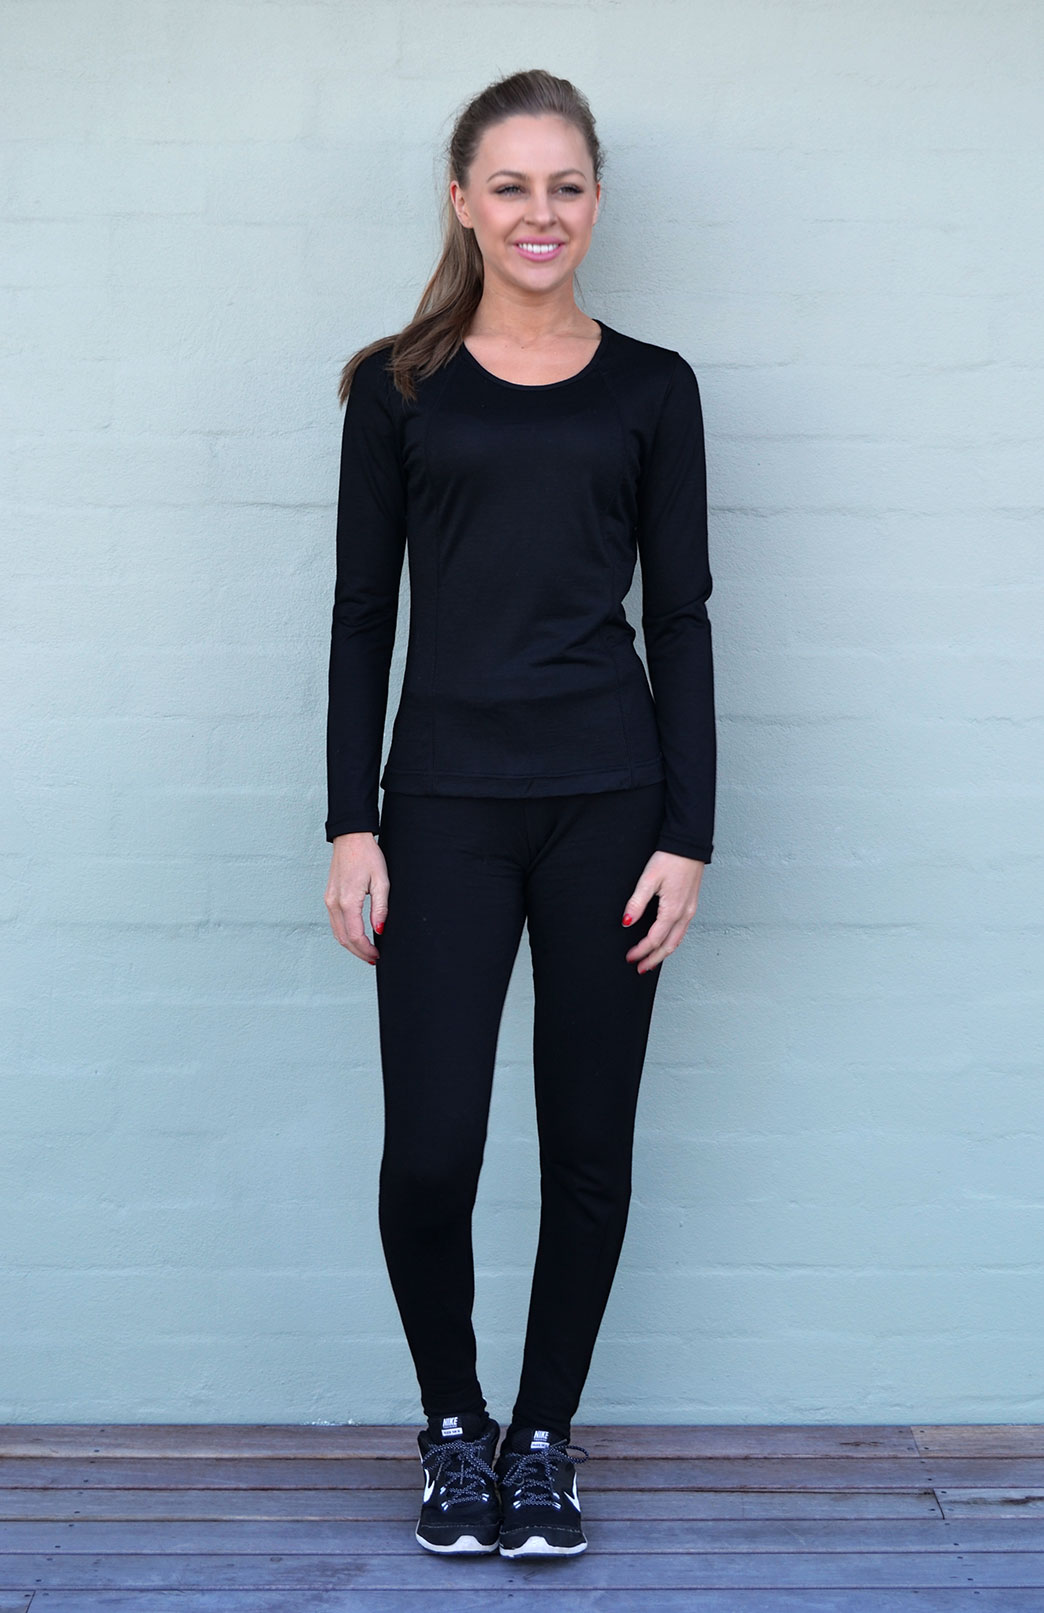 Active Top - Long Sleeved - Women's Black Merino Wool Long Sleeved Running Top - Smitten Merino Tasmania Australia